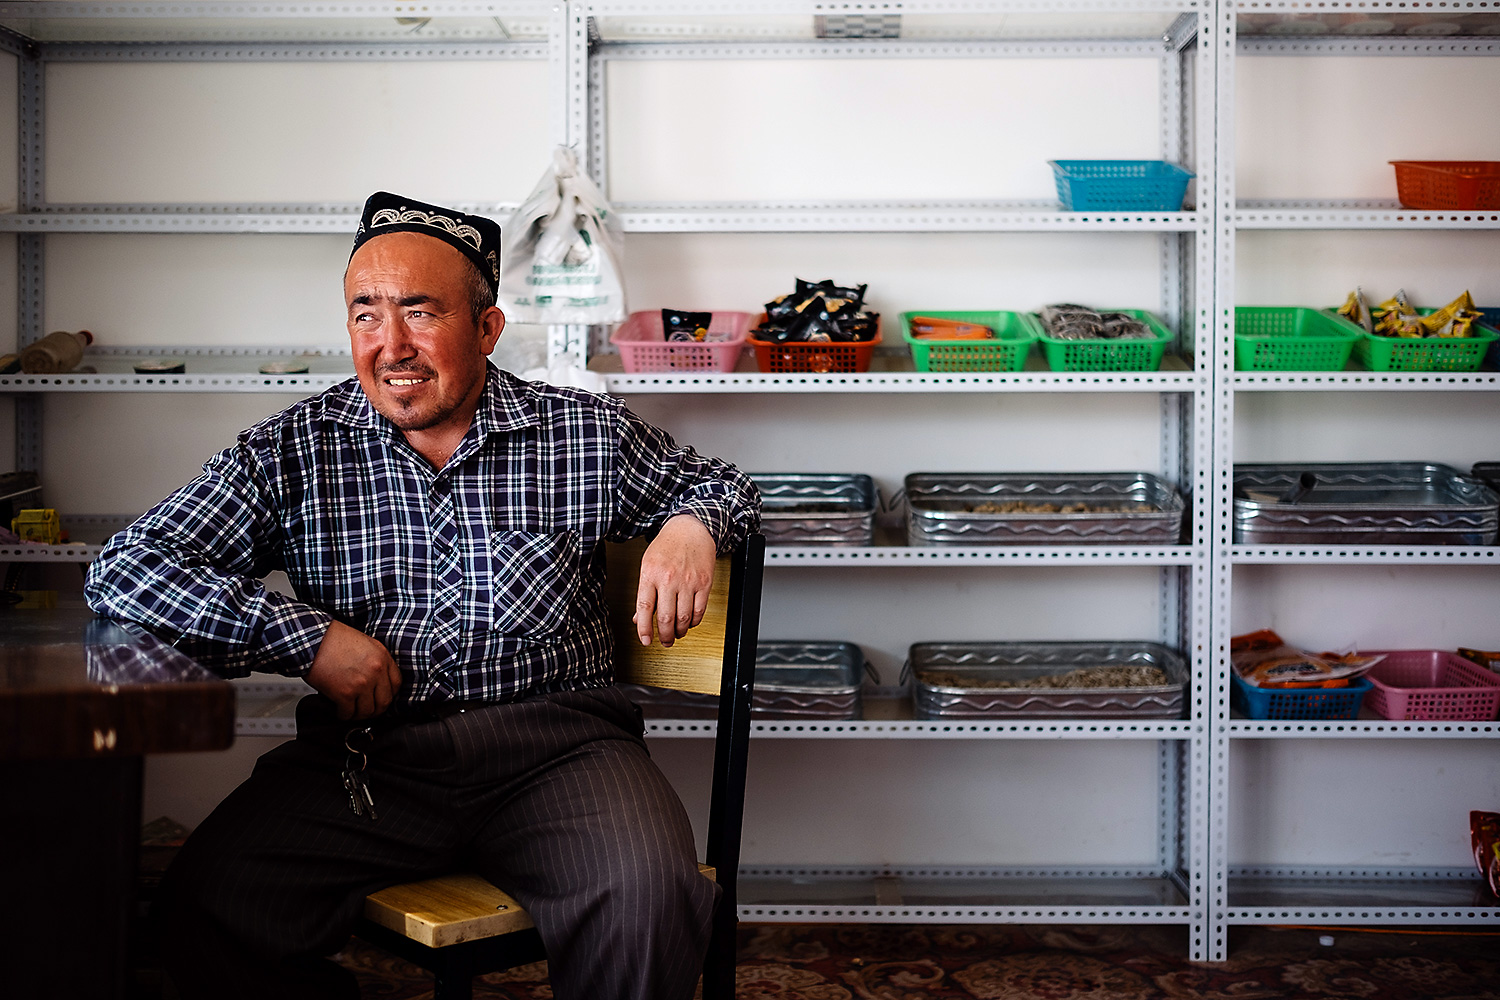 A former farmer, Tursun, who only gave his first name, tends a small shop he set up near what used to be his fields in Guangzhou New City.